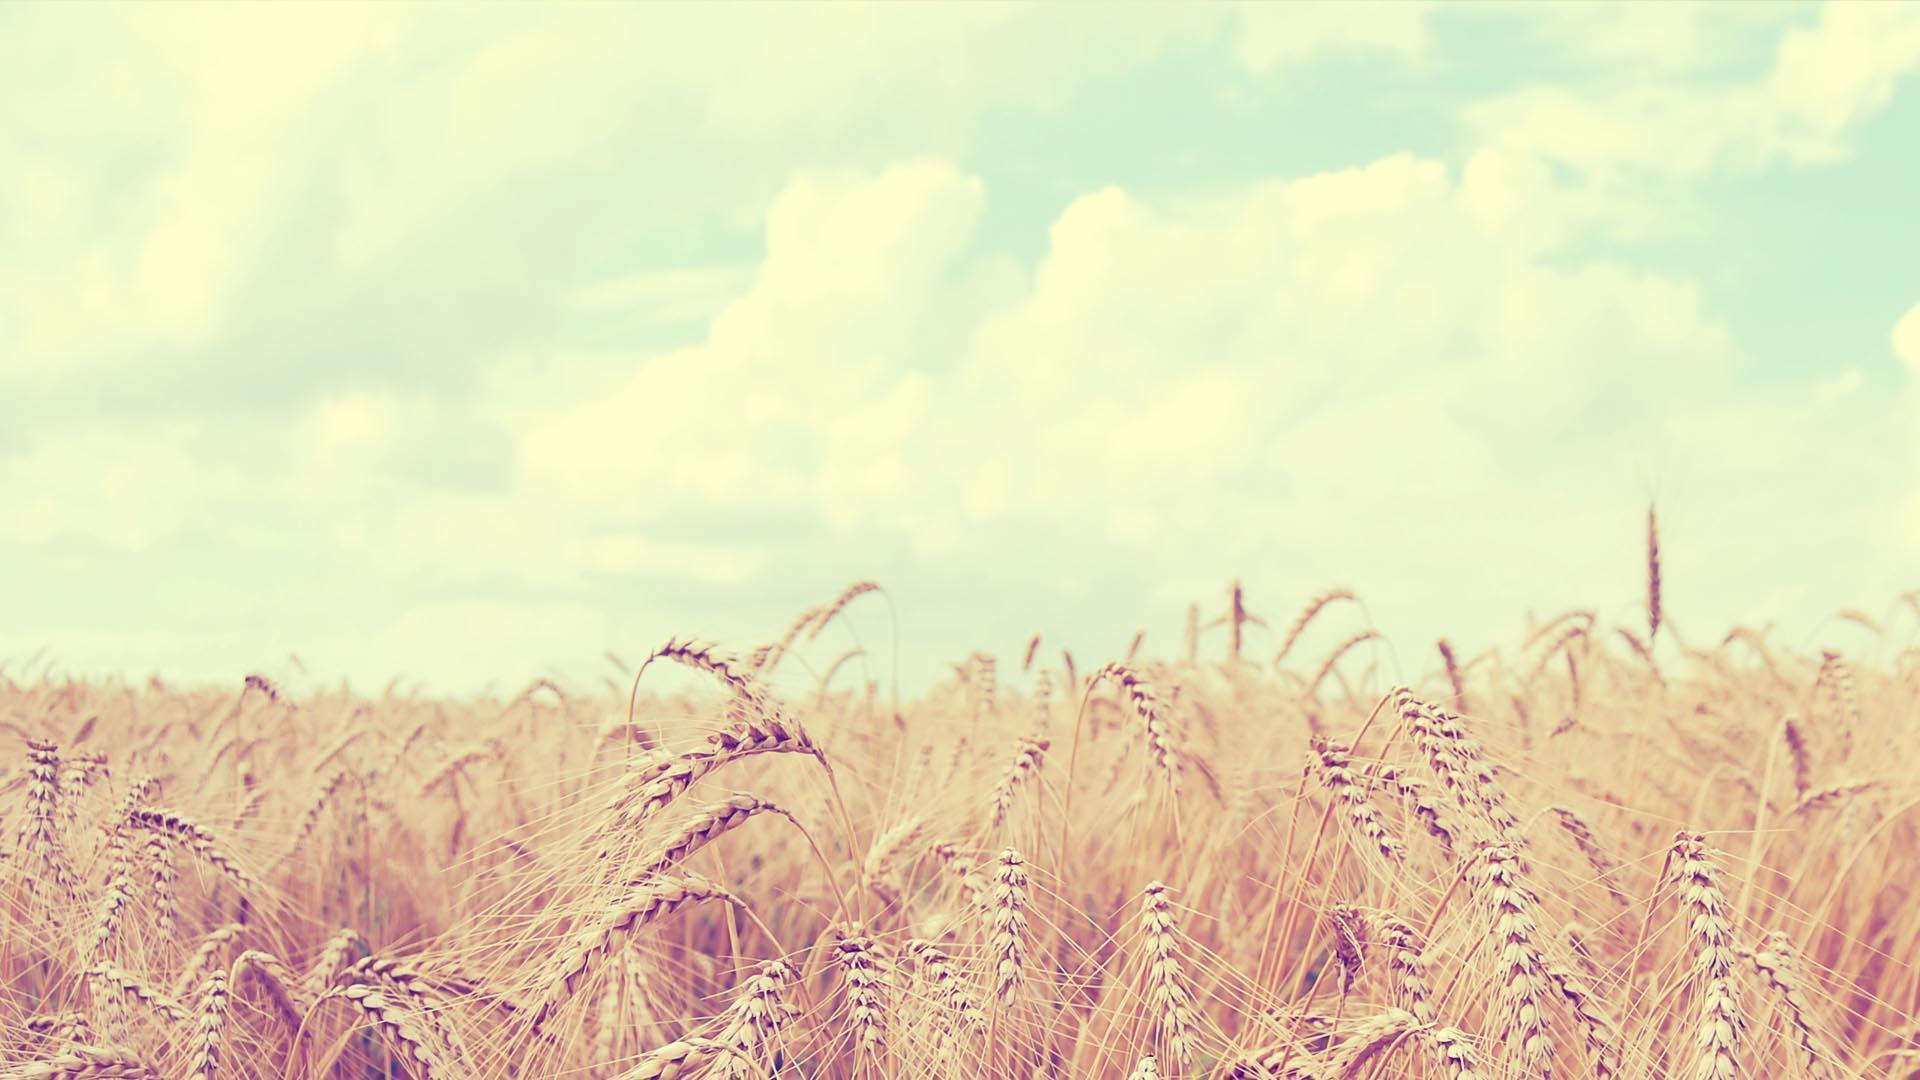 Soft Wheat Field HD Wallpaper » FullHDWpp - Full HD Wallpapers ...